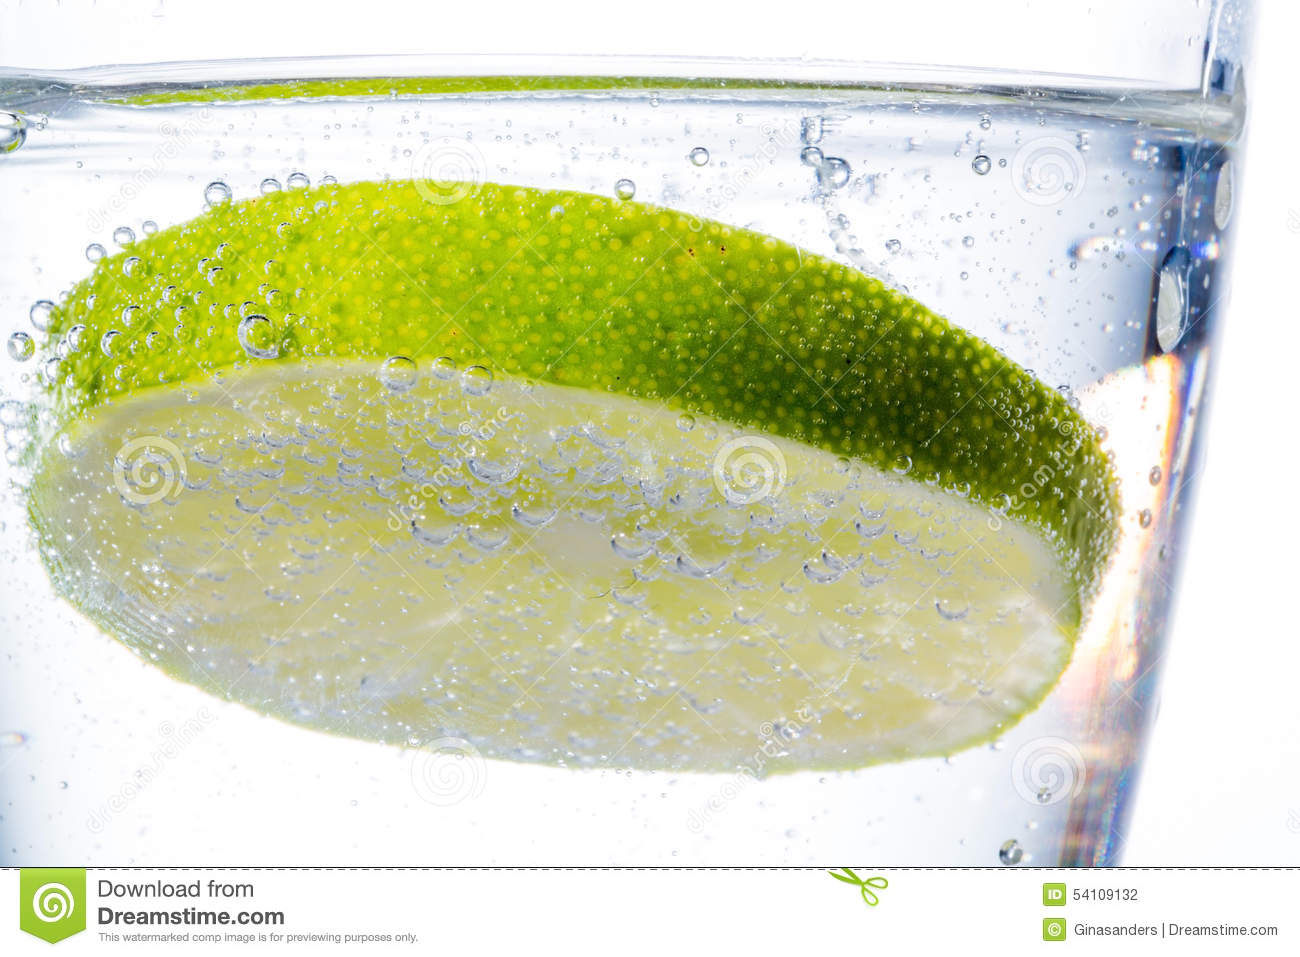 Sodium silicate and lime stock photo  Image of pure, refreshing